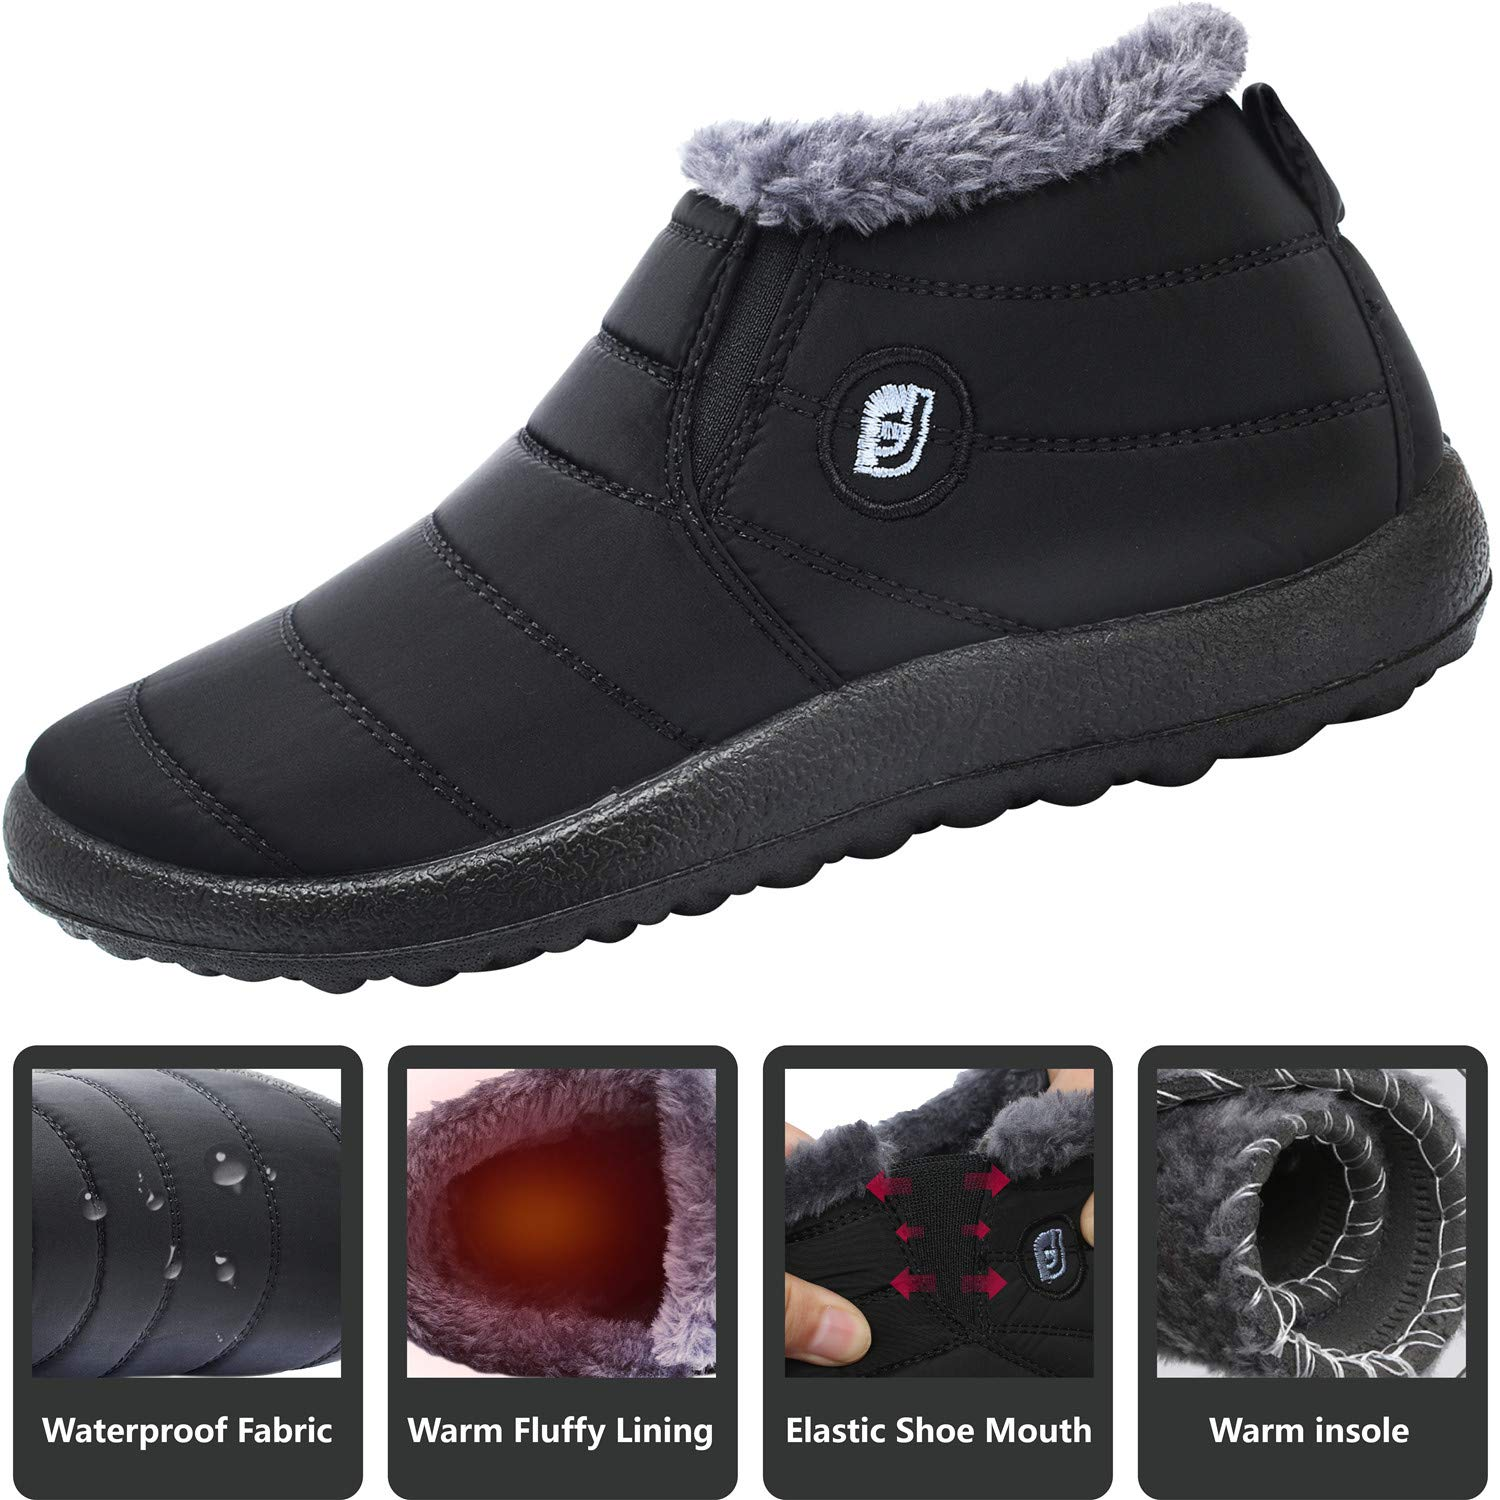 JOINFREE Womens Waterproof Snow Boots Fur Lining Slip On with Rubber Soles Black 8.5 B(M) US by JOINFREE (Image #3)